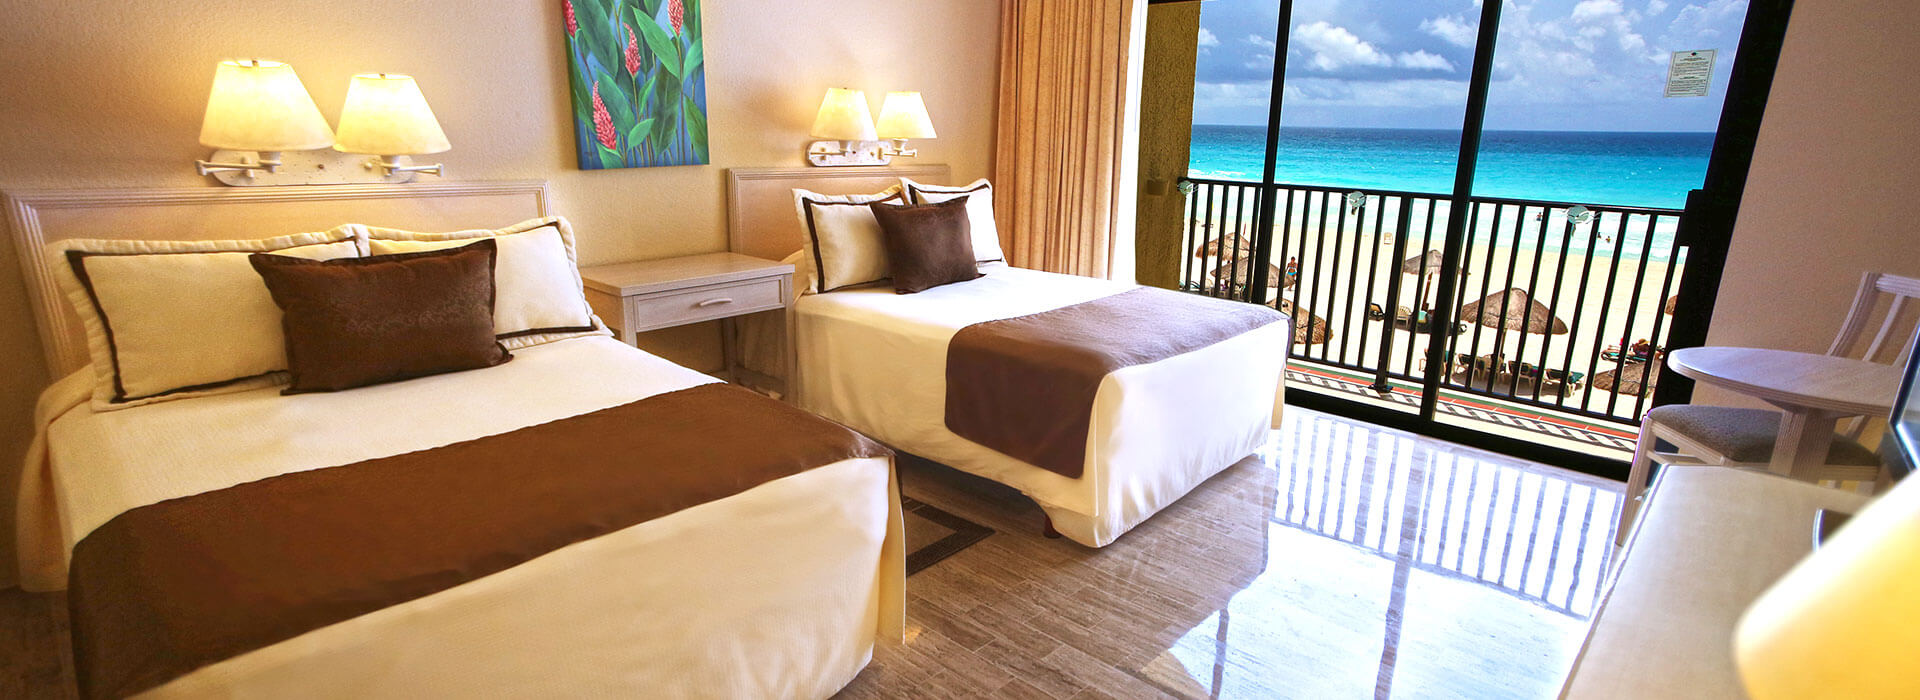 suite in cancun with two double beds